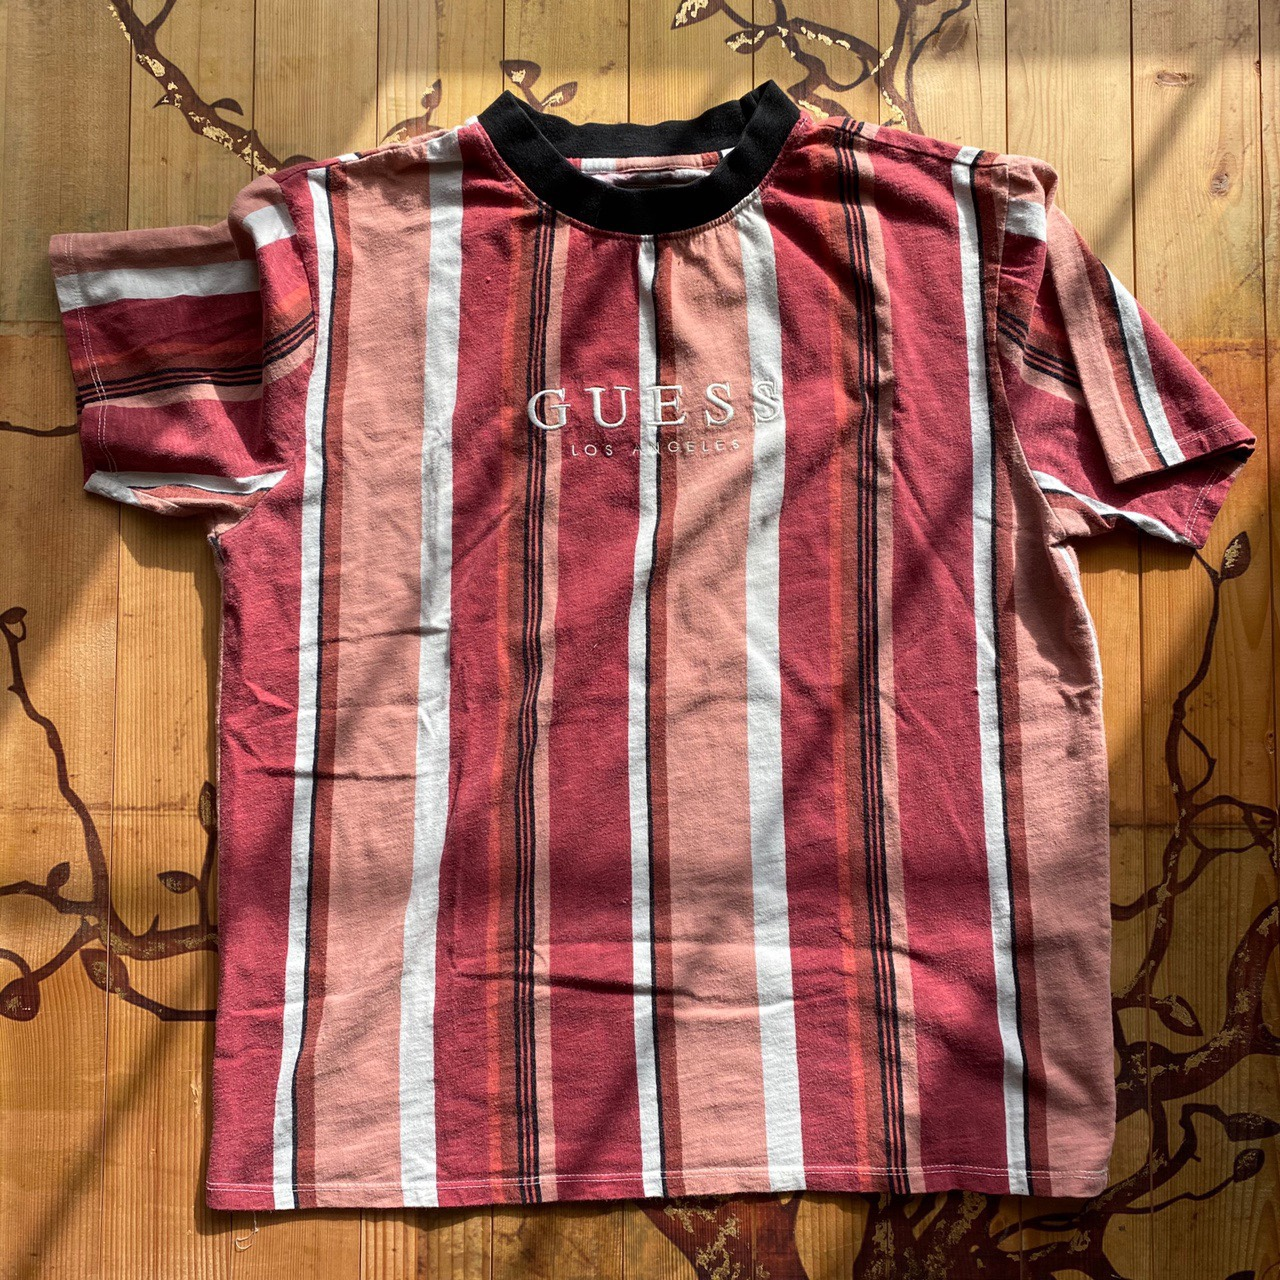 Product Image 1 - Guess sayer stripe tee  This